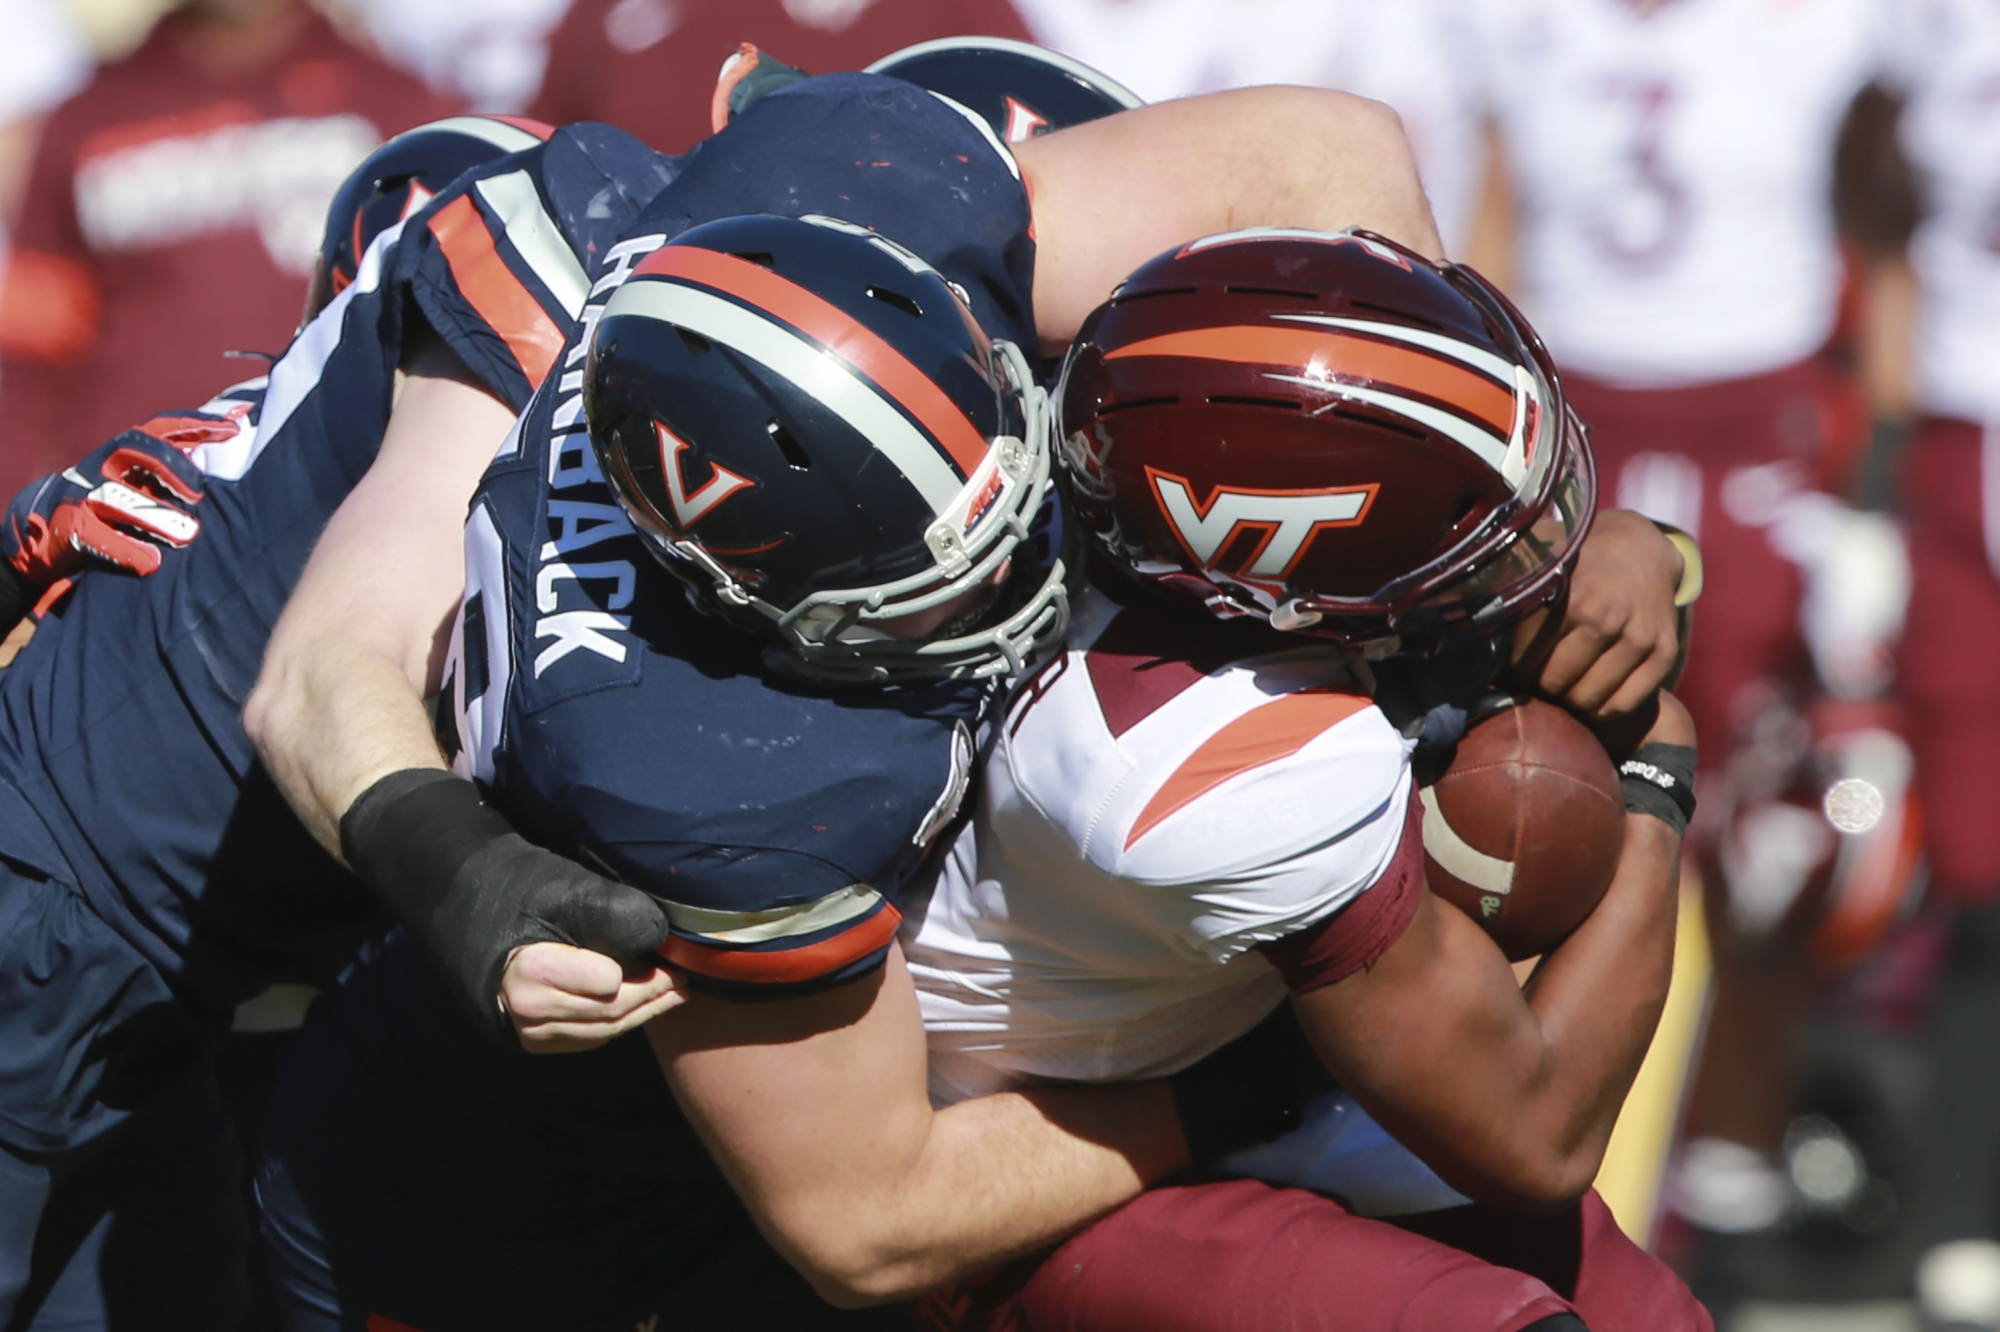 Uva Virginia Tech Football Game Pushed Back Over Covid 19 Concerns Wtop